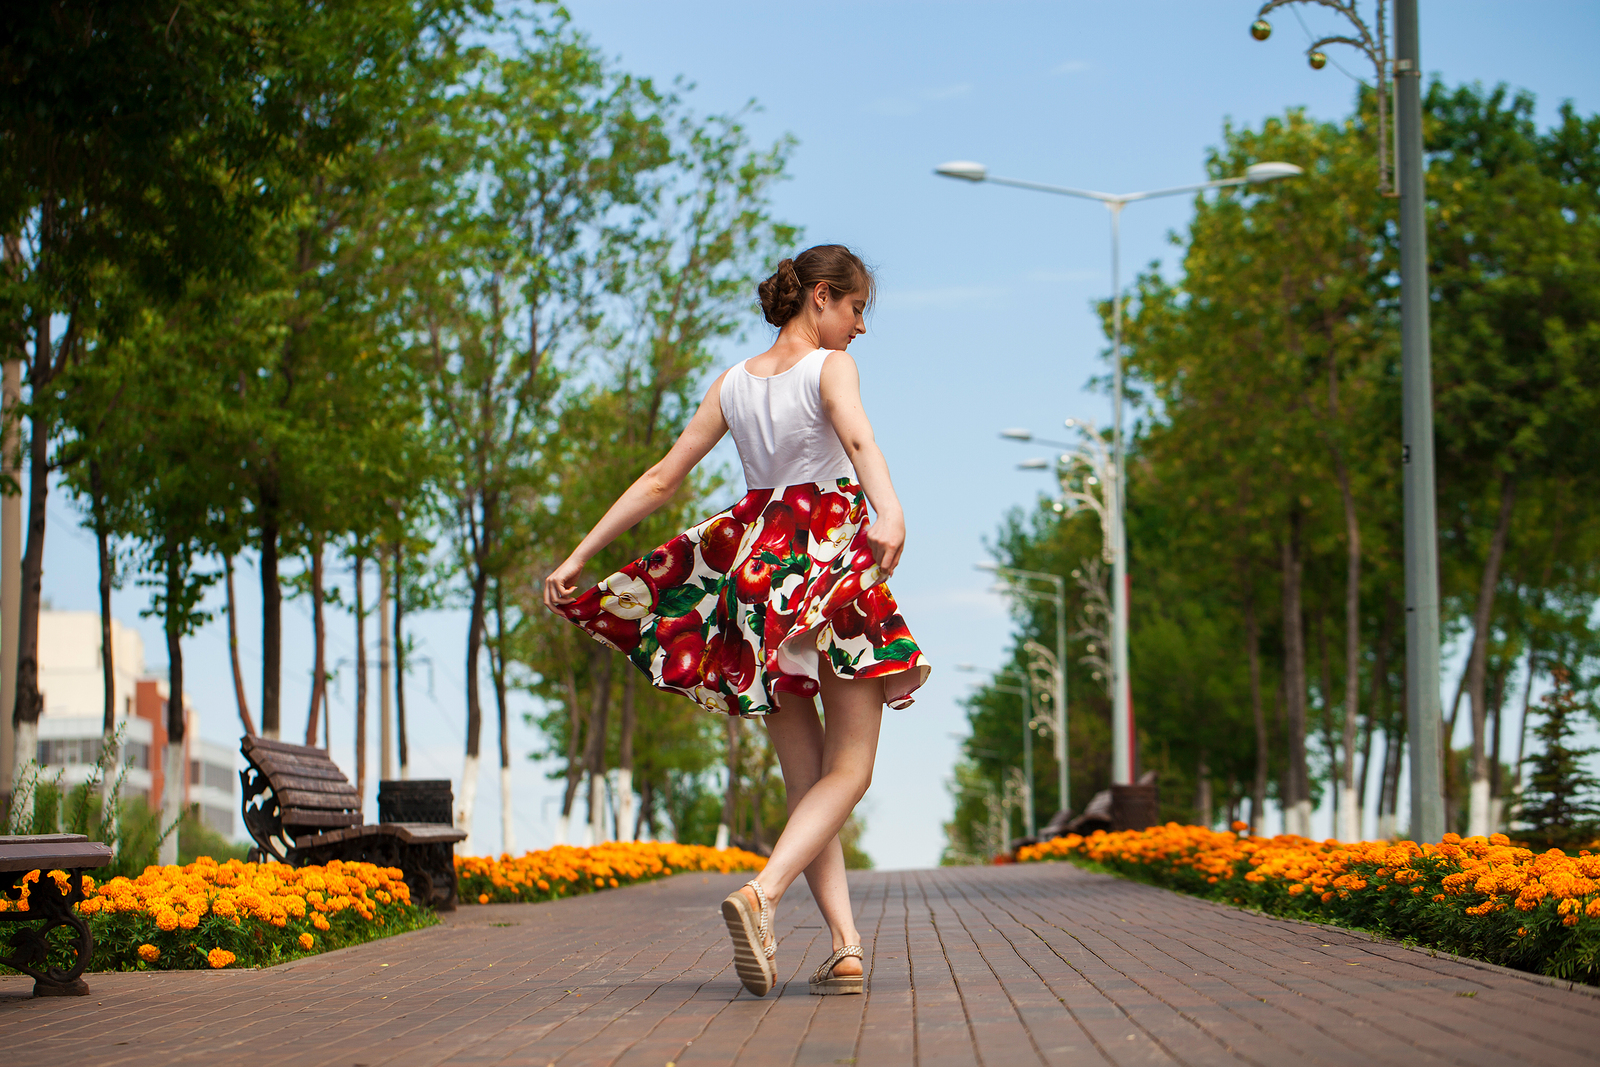 Full body portrait of a young brunette woman walking in flowers dress, summer park outdoors